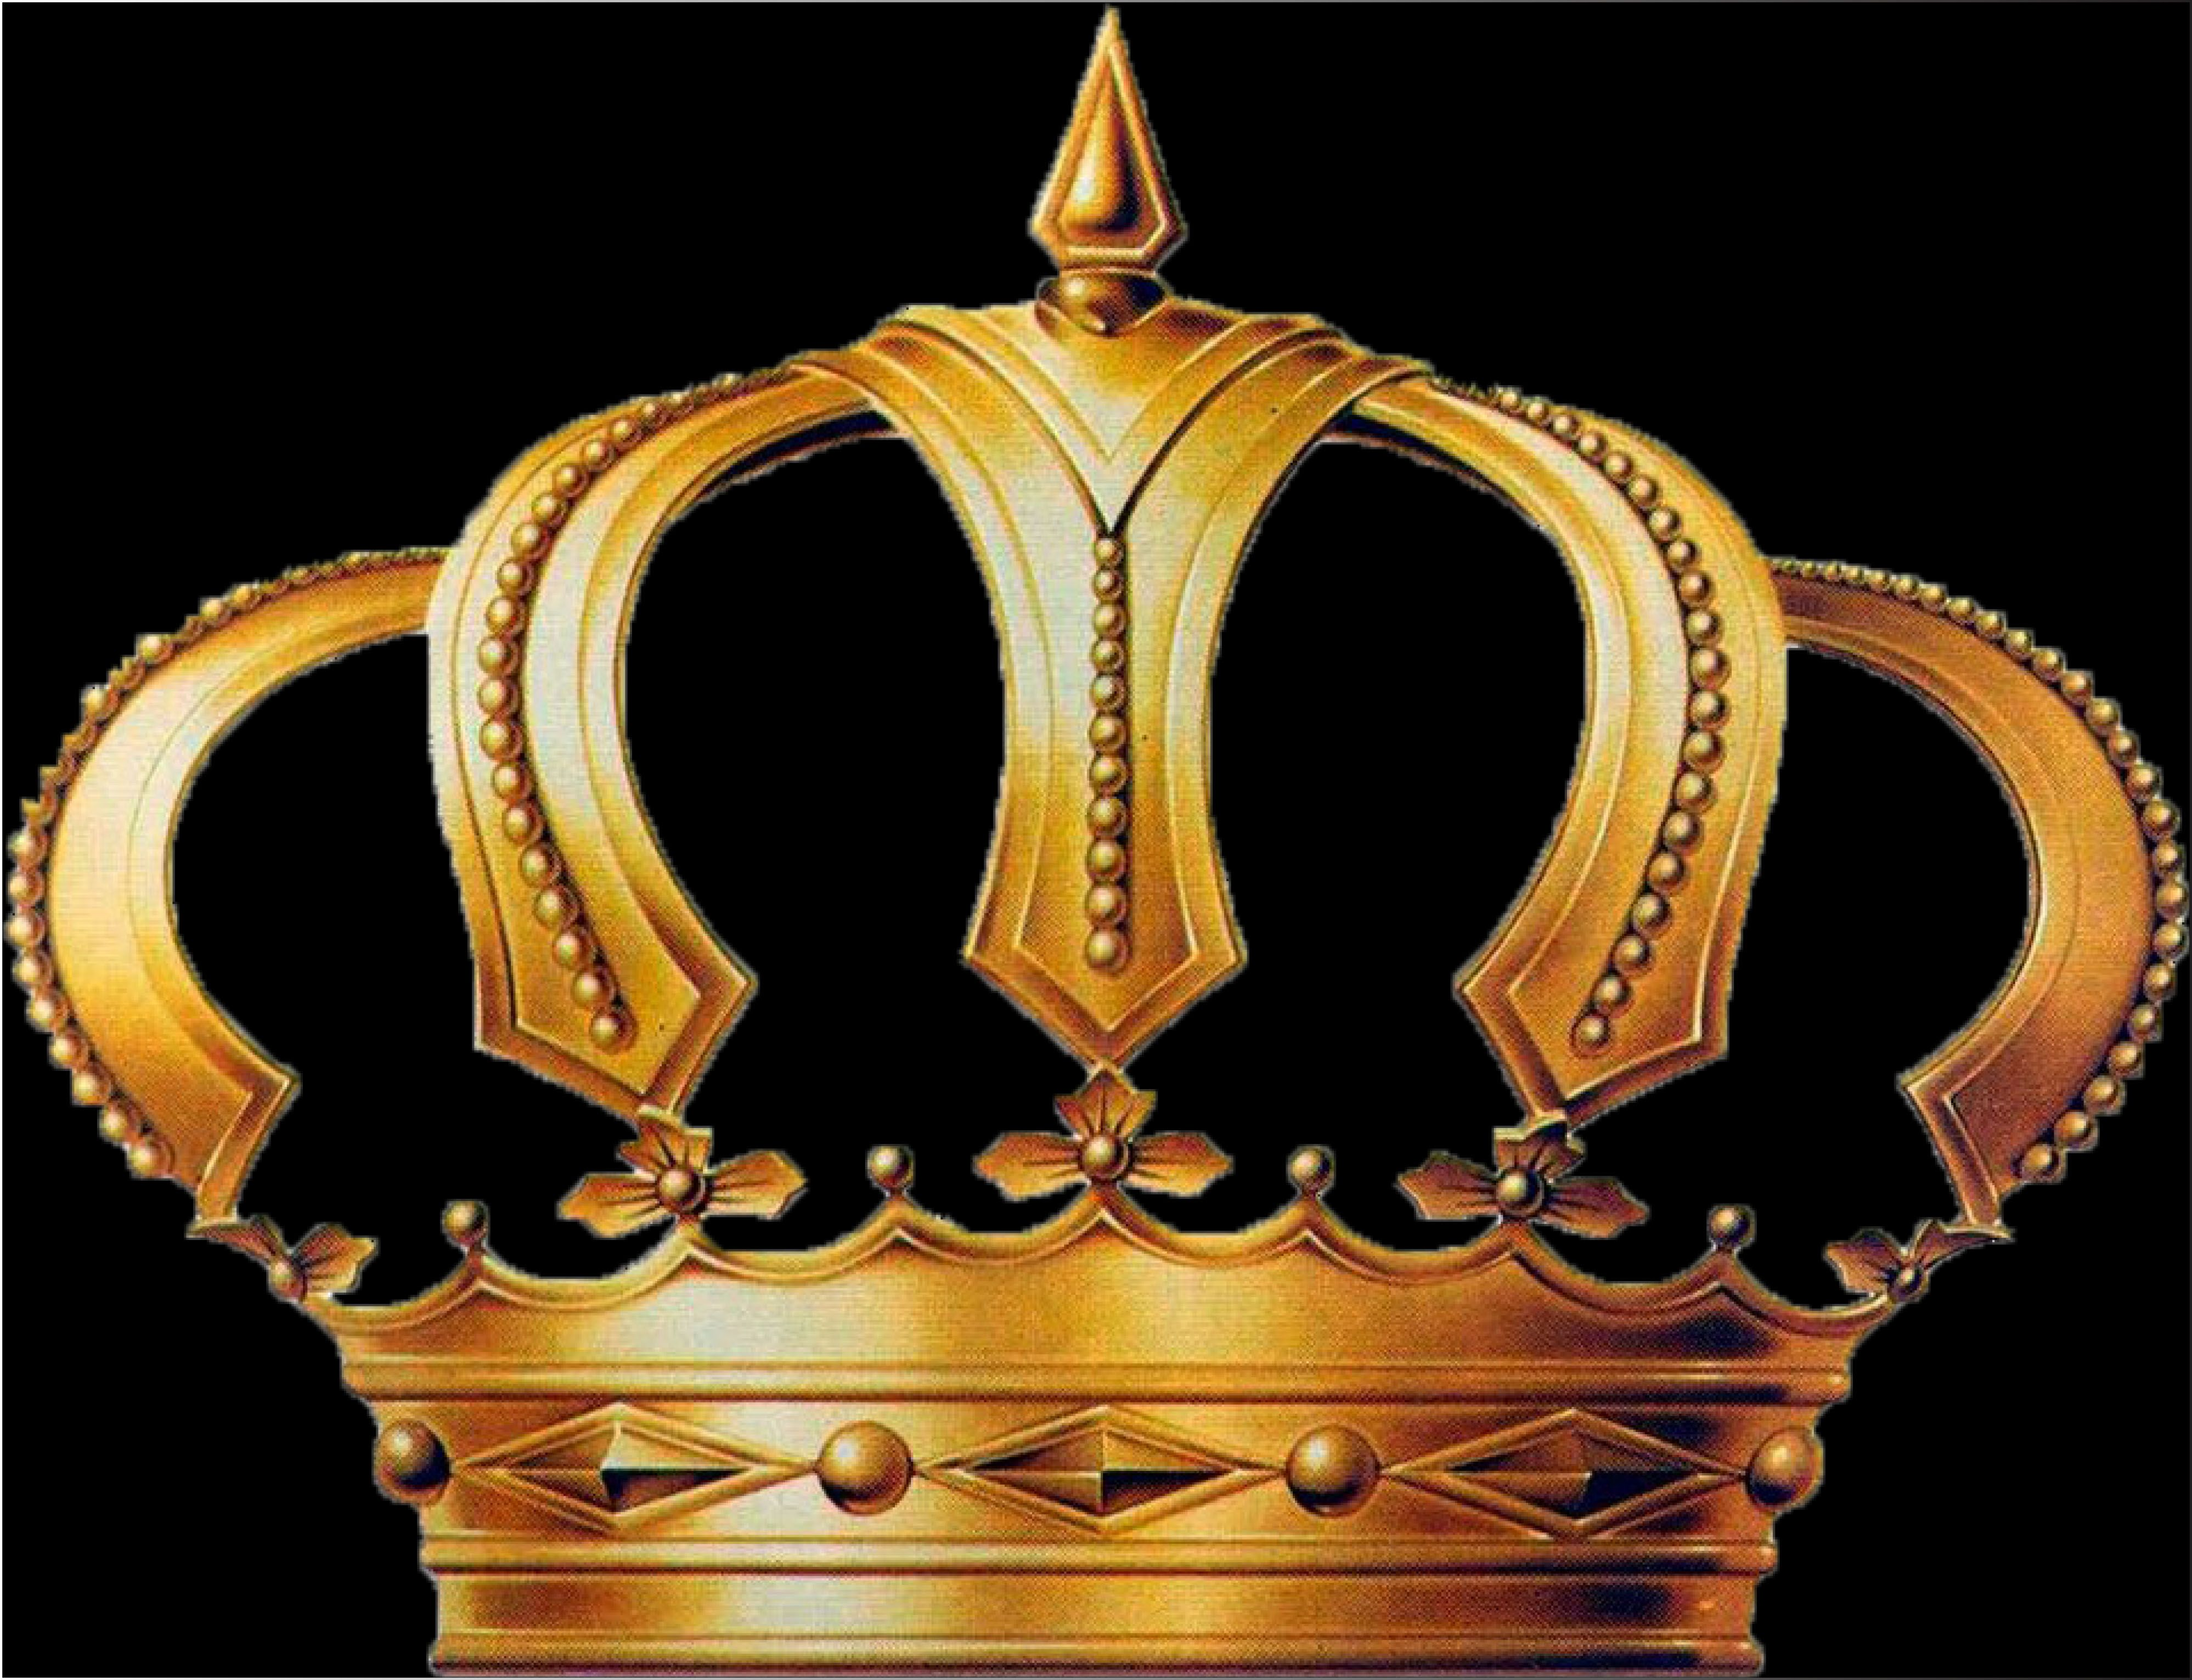 REAL CROWN PICTURES - Google Search | TIARAS AND CROWNS ...